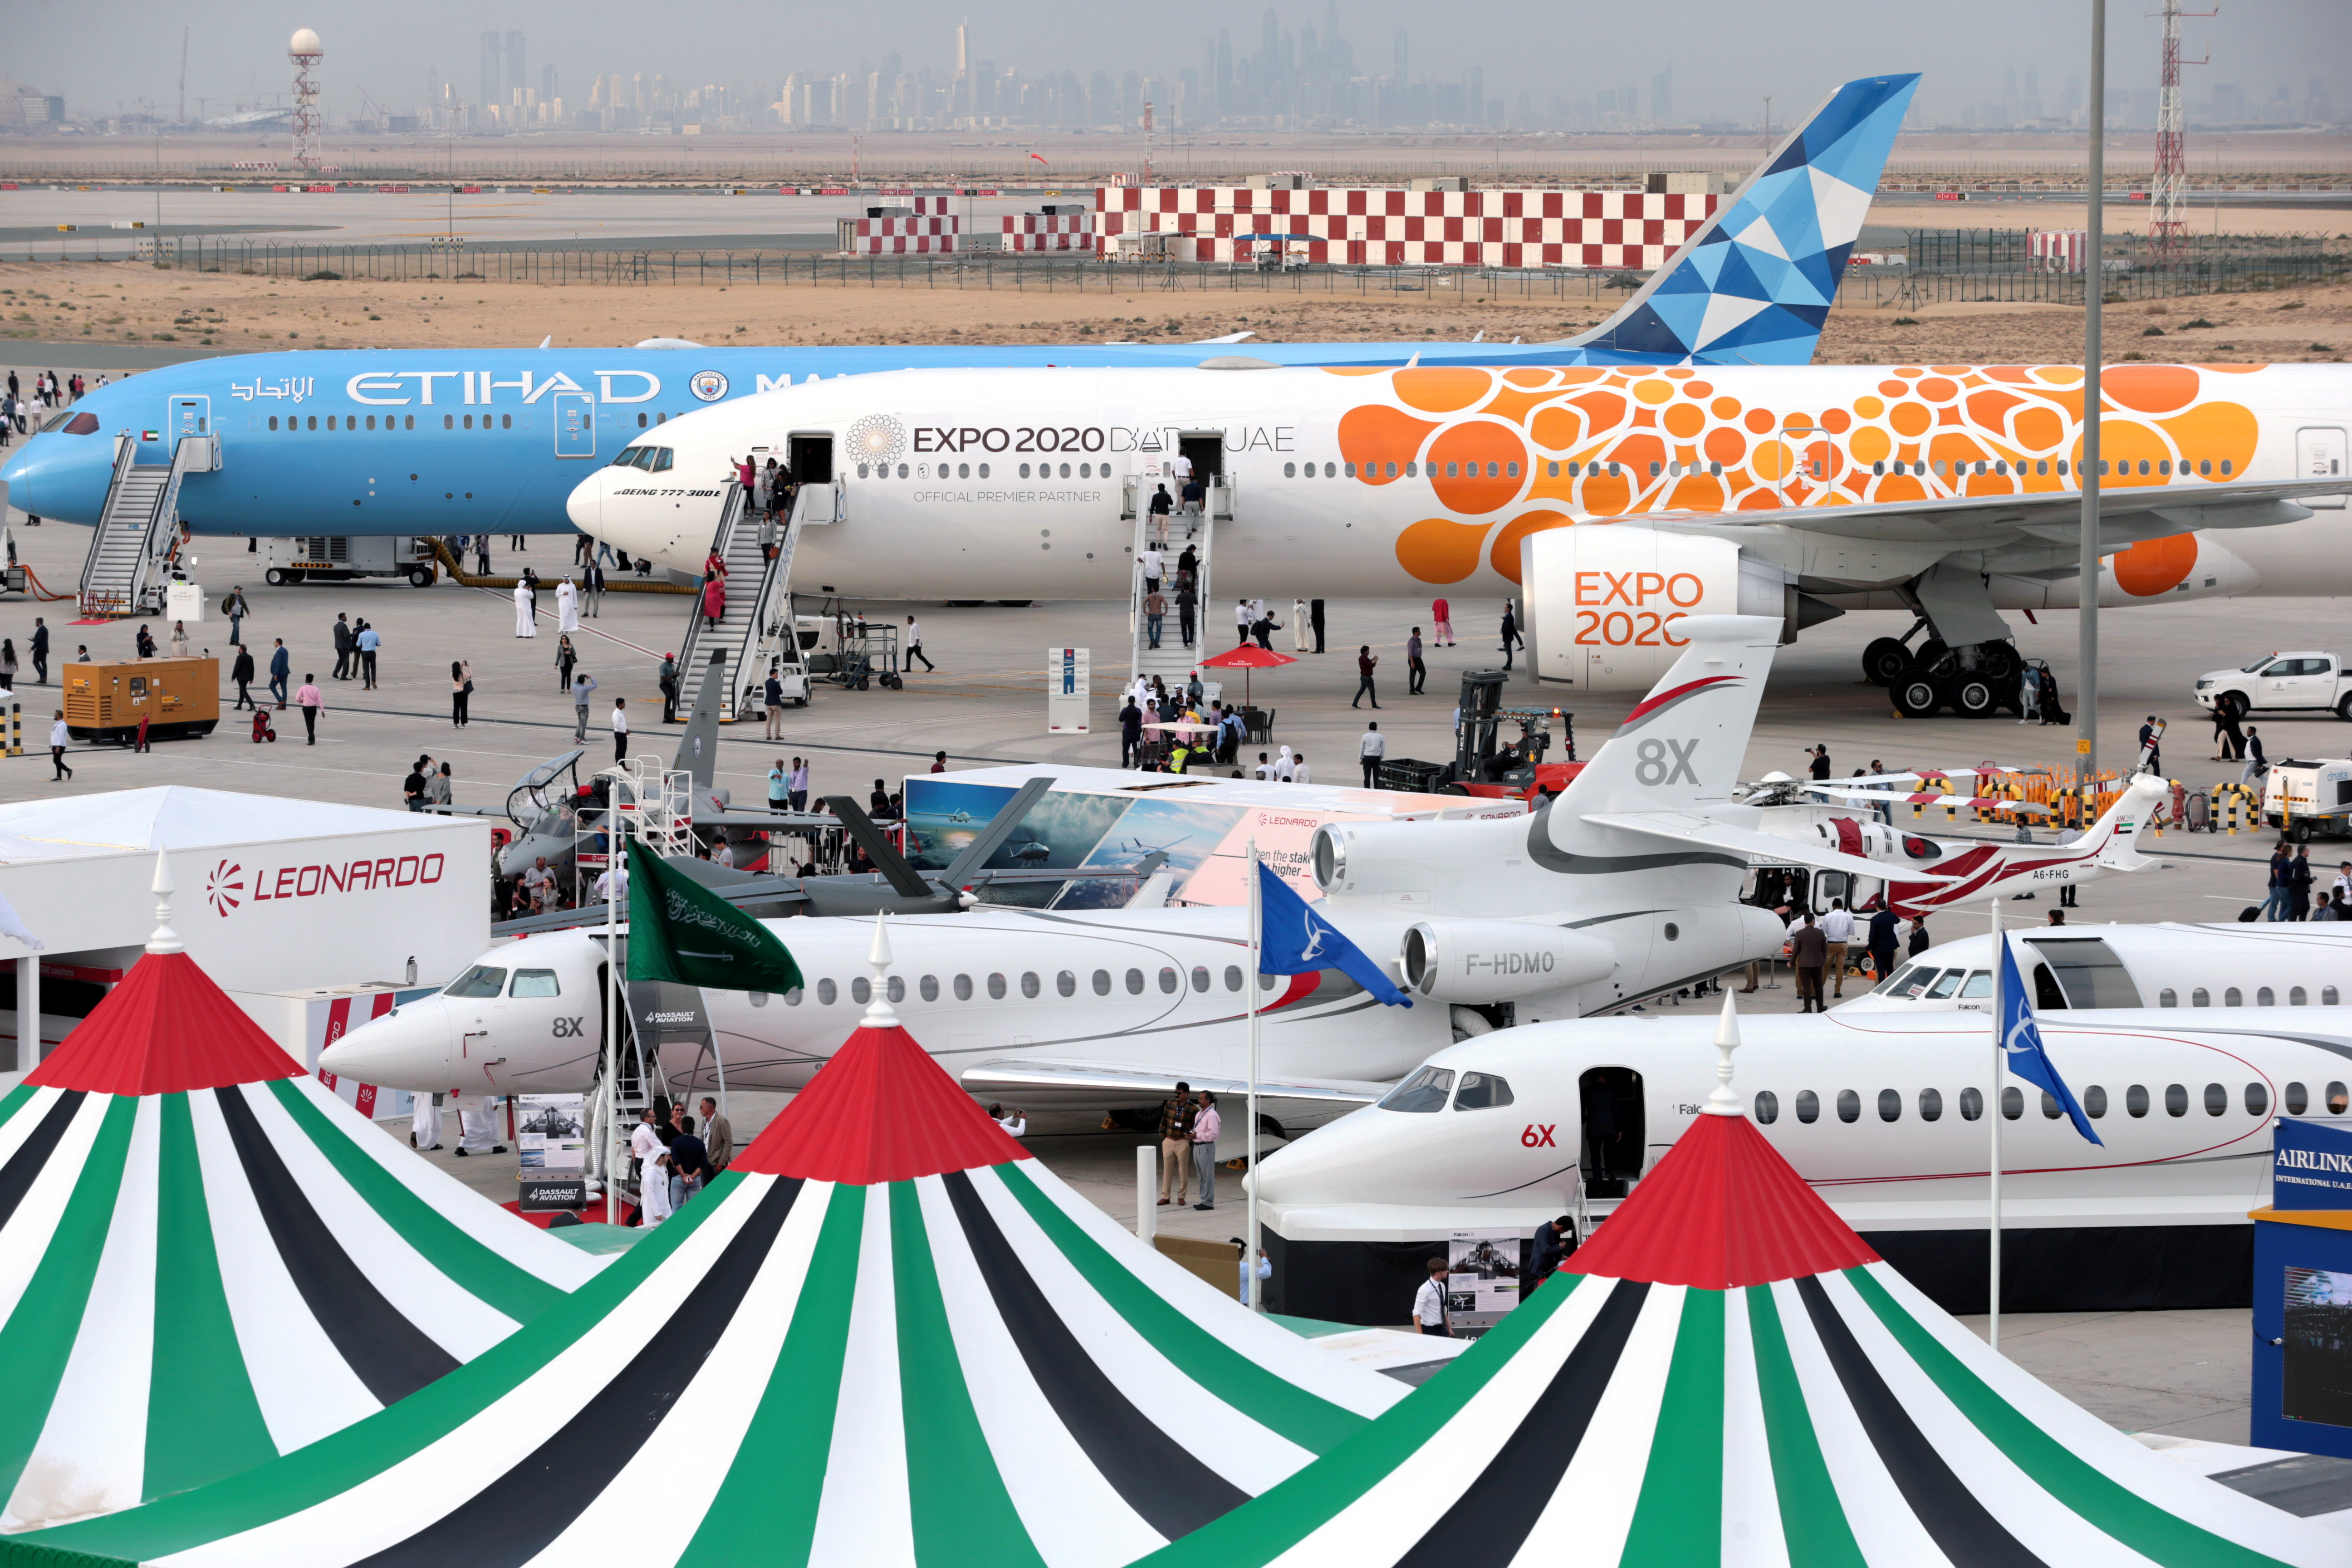 Aircraft sit on static display during the fifth day of Dubai Air Show in Dubai, United Arab Emirates November 21, 2019. REUTERS/Christopher Pike/Files